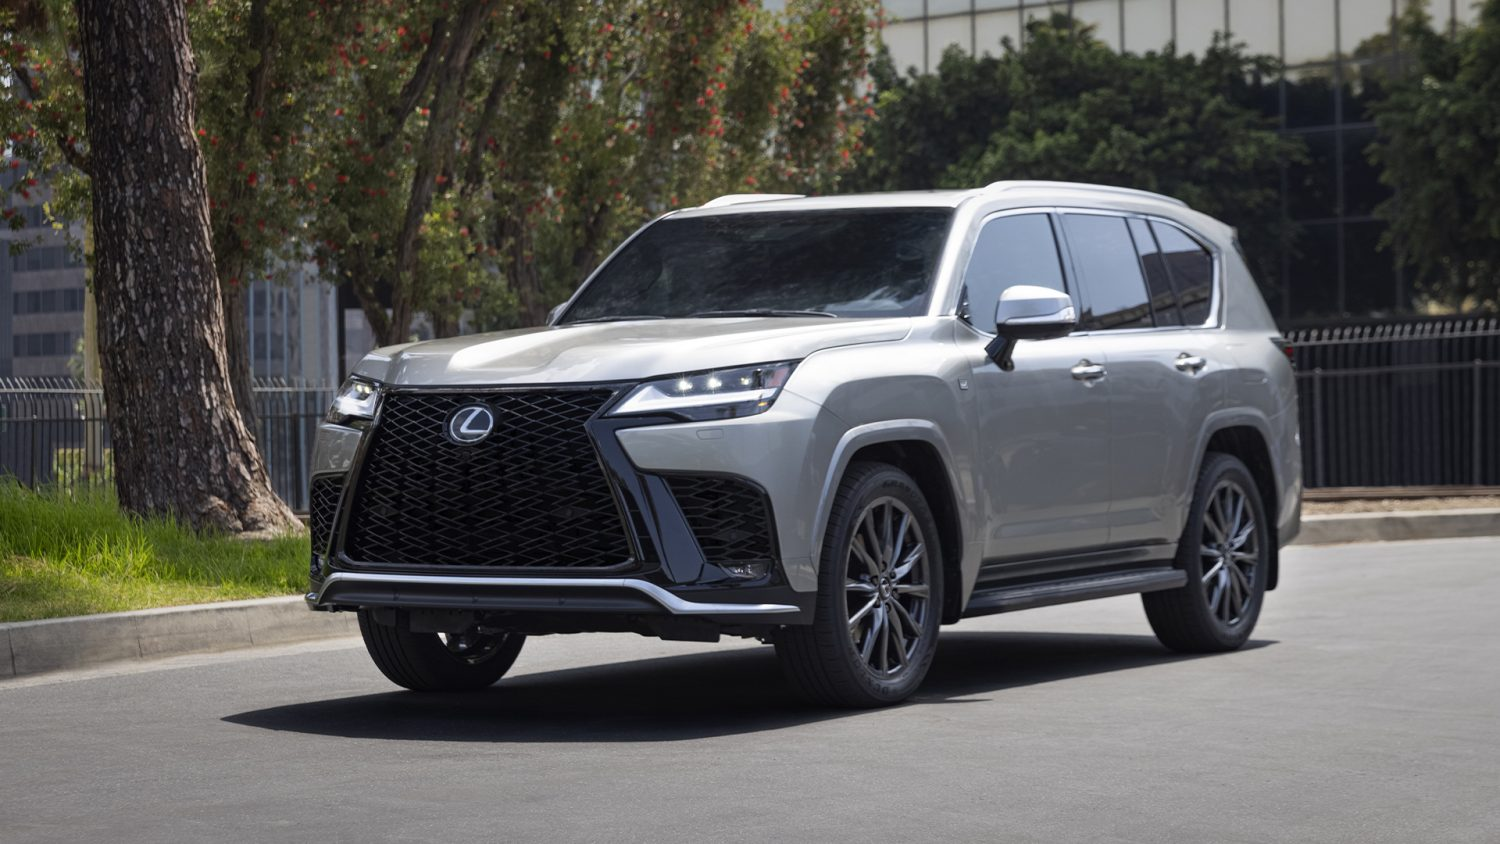 Specifications and price of 2022 Lexus LX 600 in Nigeria